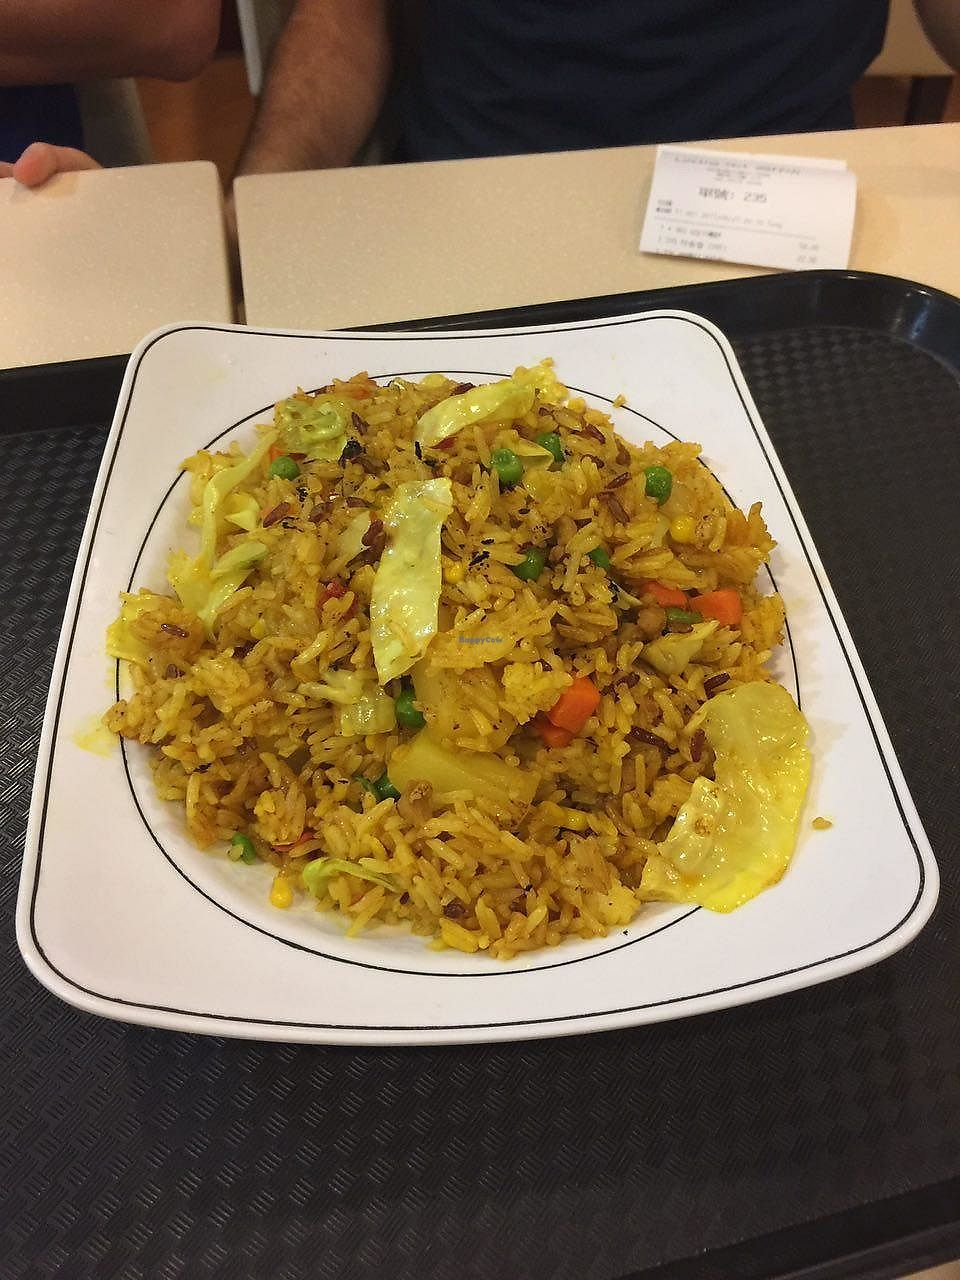 """Photo of Loving Hut - Wan Chai  by <a href=""""/members/profile/FlokiTheCat"""">FlokiTheCat</a> <br/>Fried curry rice <br/> June 29, 2017  - <a href='/contact/abuse/image/19570/274649'>Report</a>"""